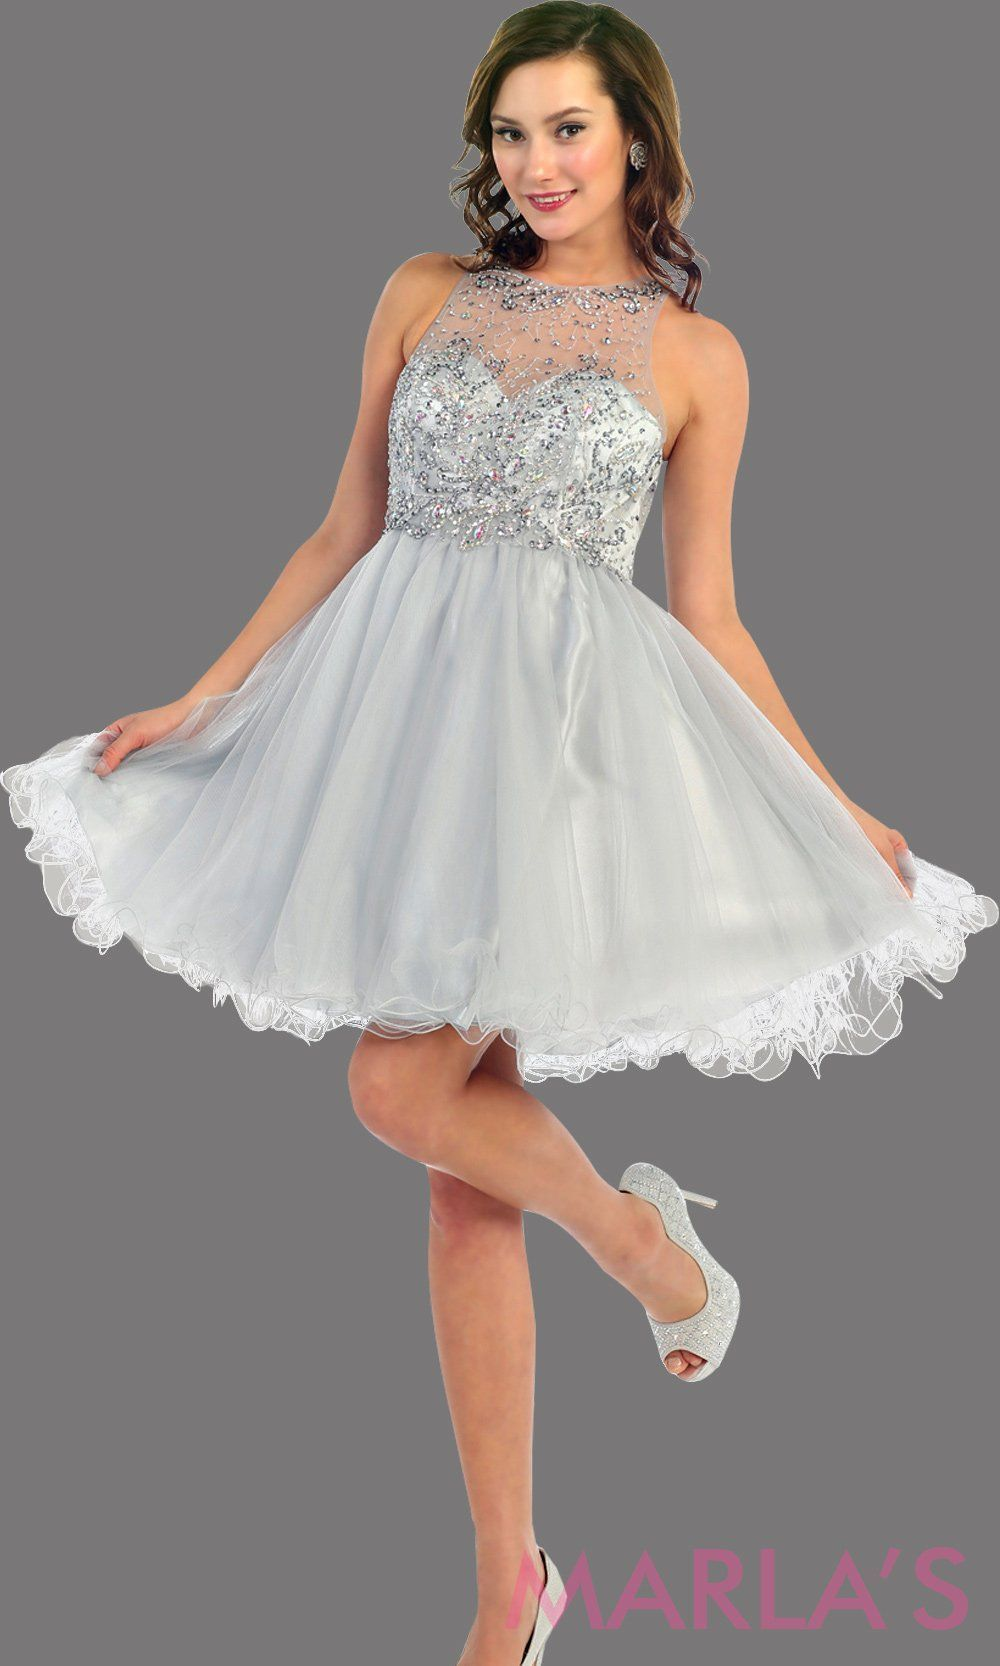 023fe9997449 Silver Short Beaded Top with Flowy Skirt #graduationdress #graddress  #promdress #bridaldress #showerdress